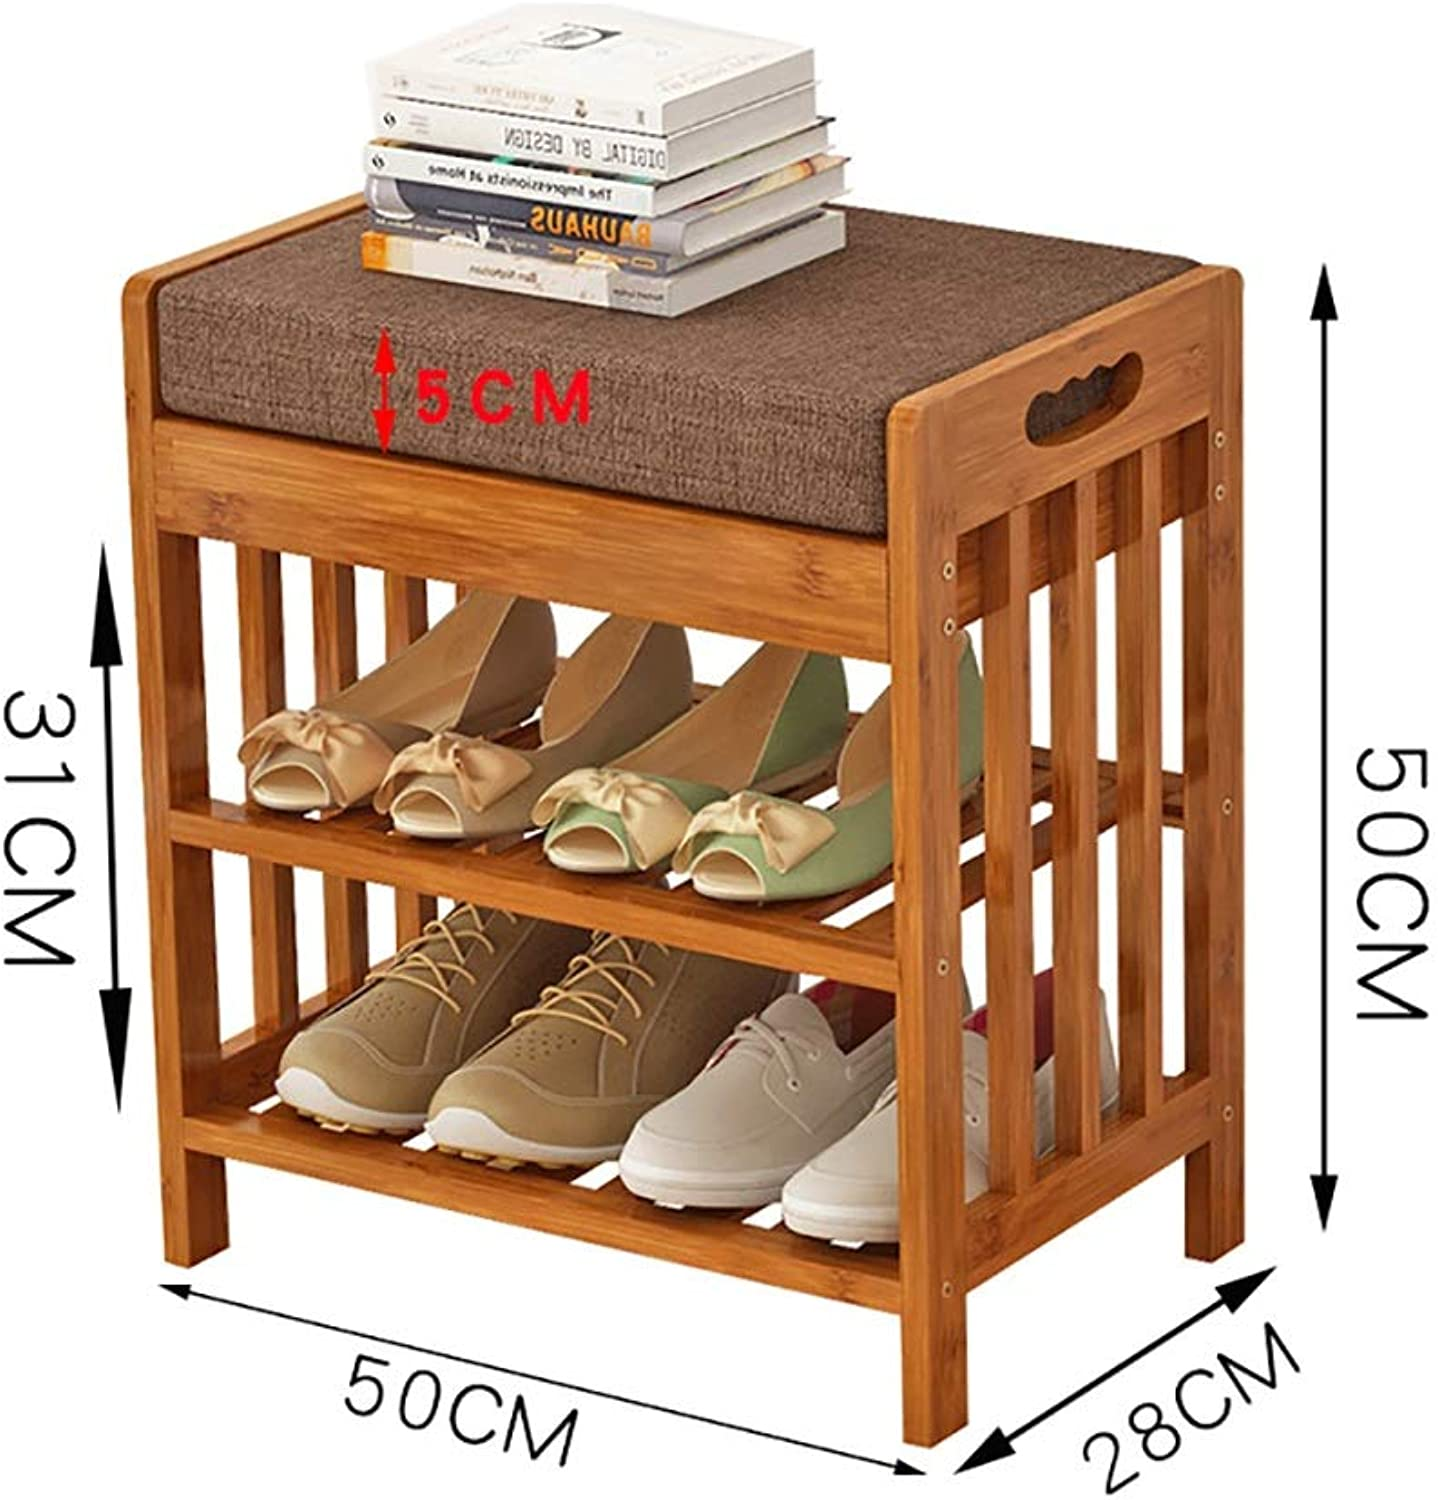 Entrance Door Change shoes Bench 2 Layer shoes Rack shoes Stool Storage Stool Frame Sofa Stool shoes Cabinet Test shoes Bench Wearing a shoes Bench Bamboo (Size   50  28  50cm)